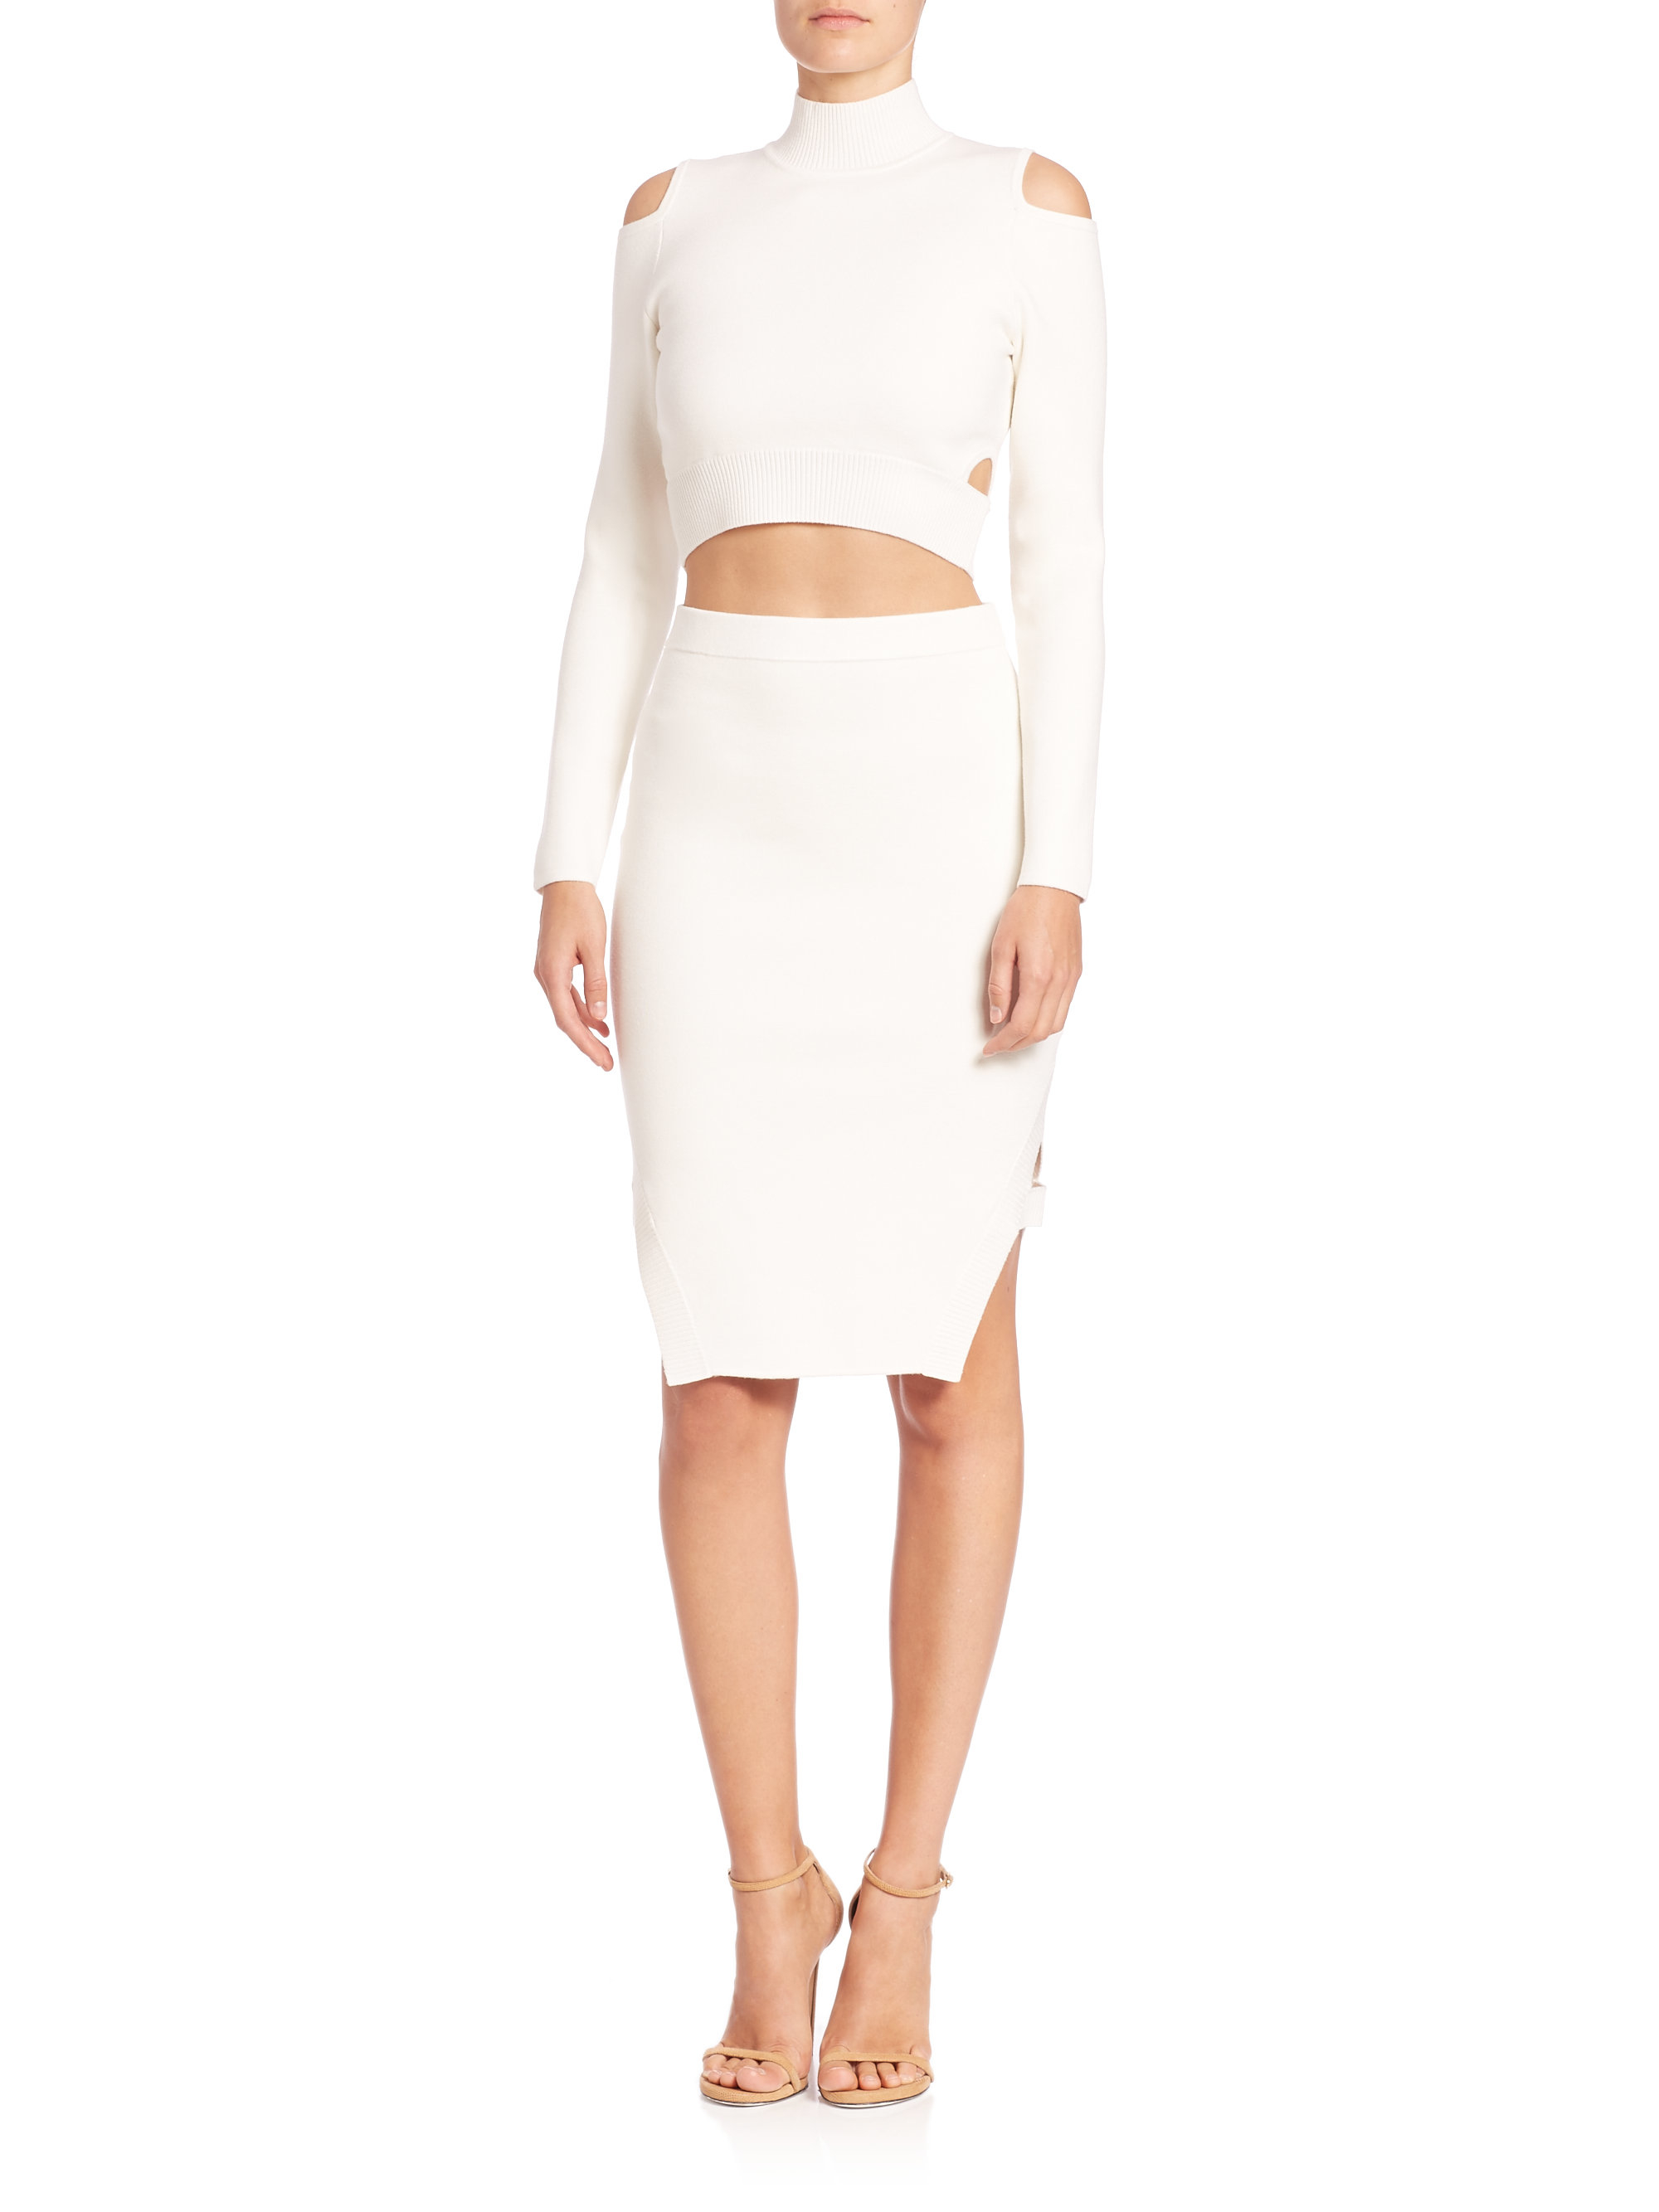 Jonathan simkhai Cutout Cropped Turtleneck Sweater in White | Lyst